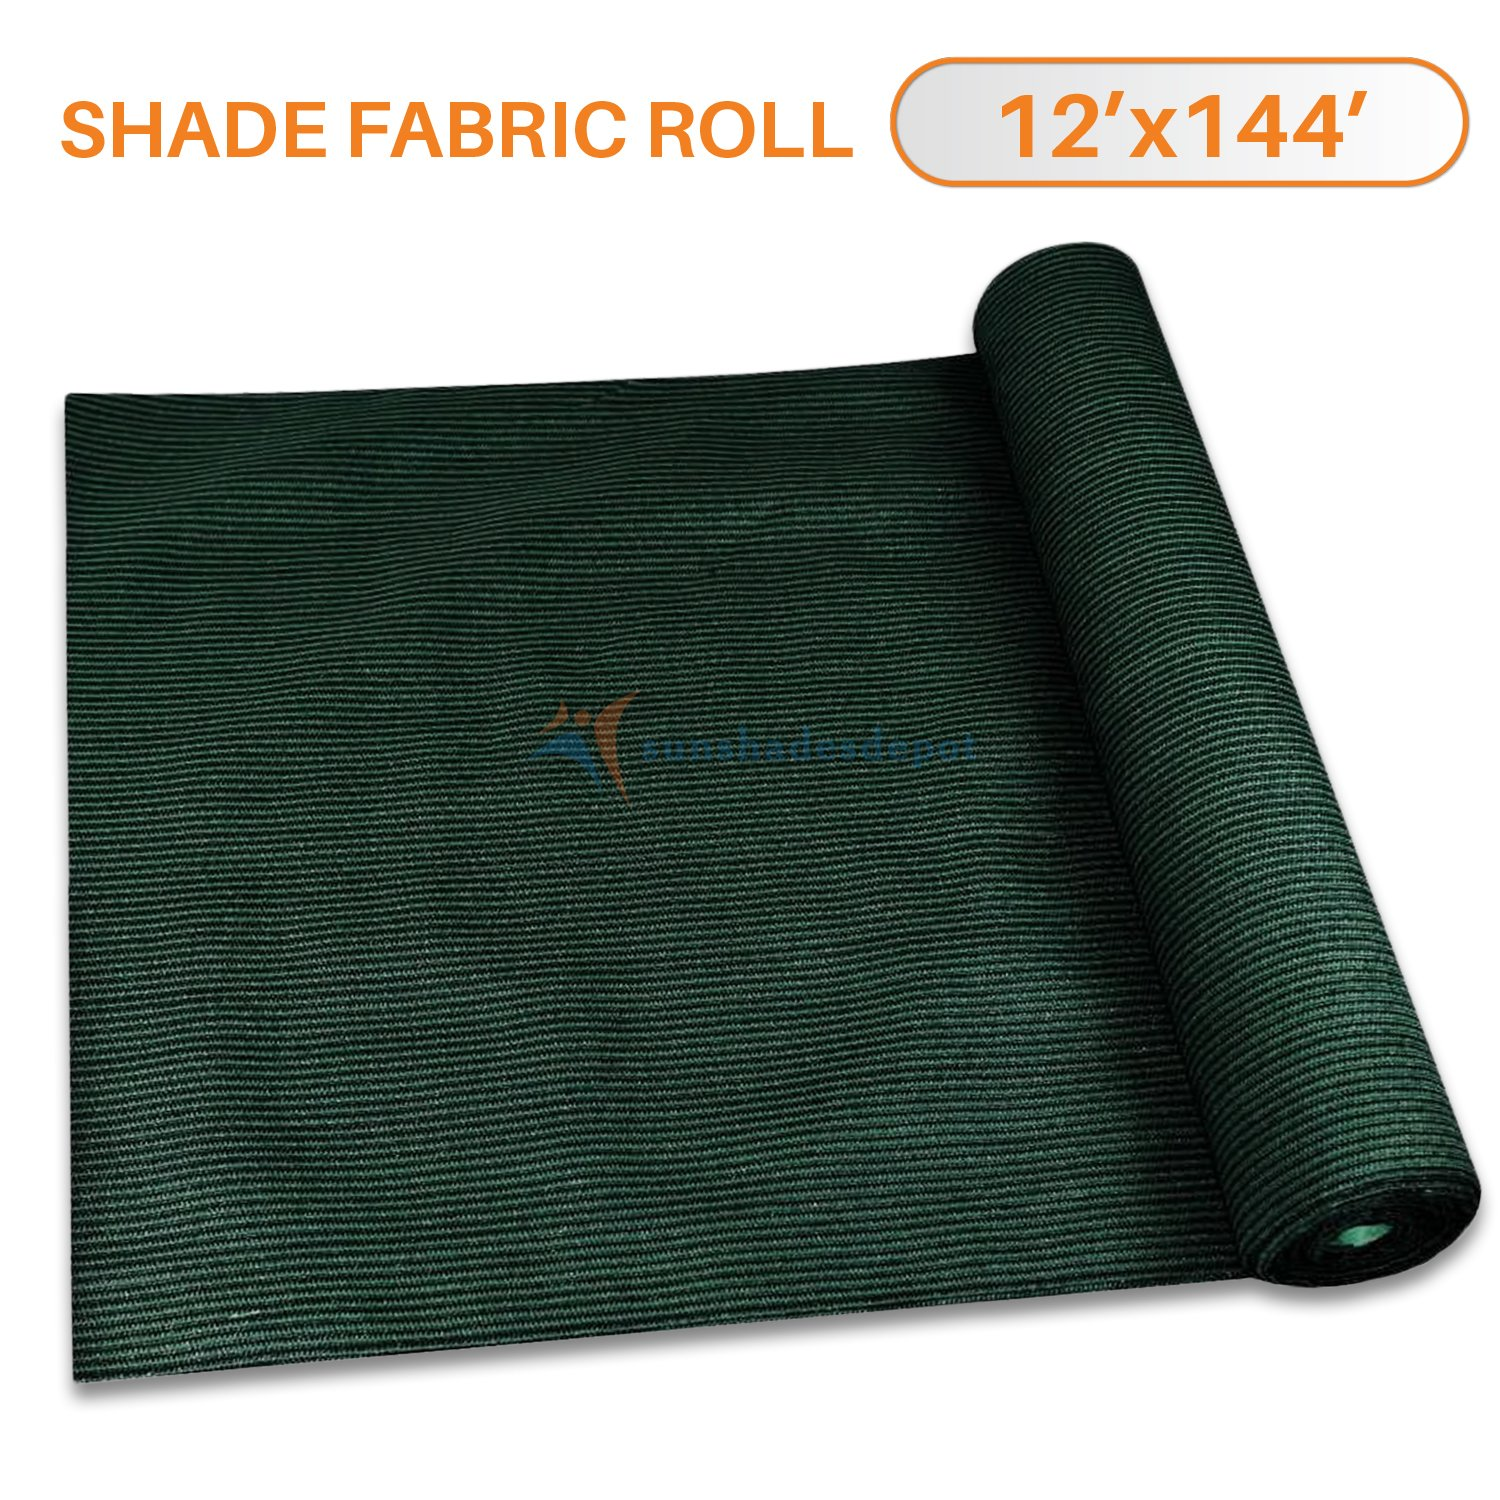 Sunshades Depot by Tang 12' x 144' Shade Cloth 180 GSM HDPE Dark Green Fabric Roll Up to 95% Blockage UV Resistant Mesh Net